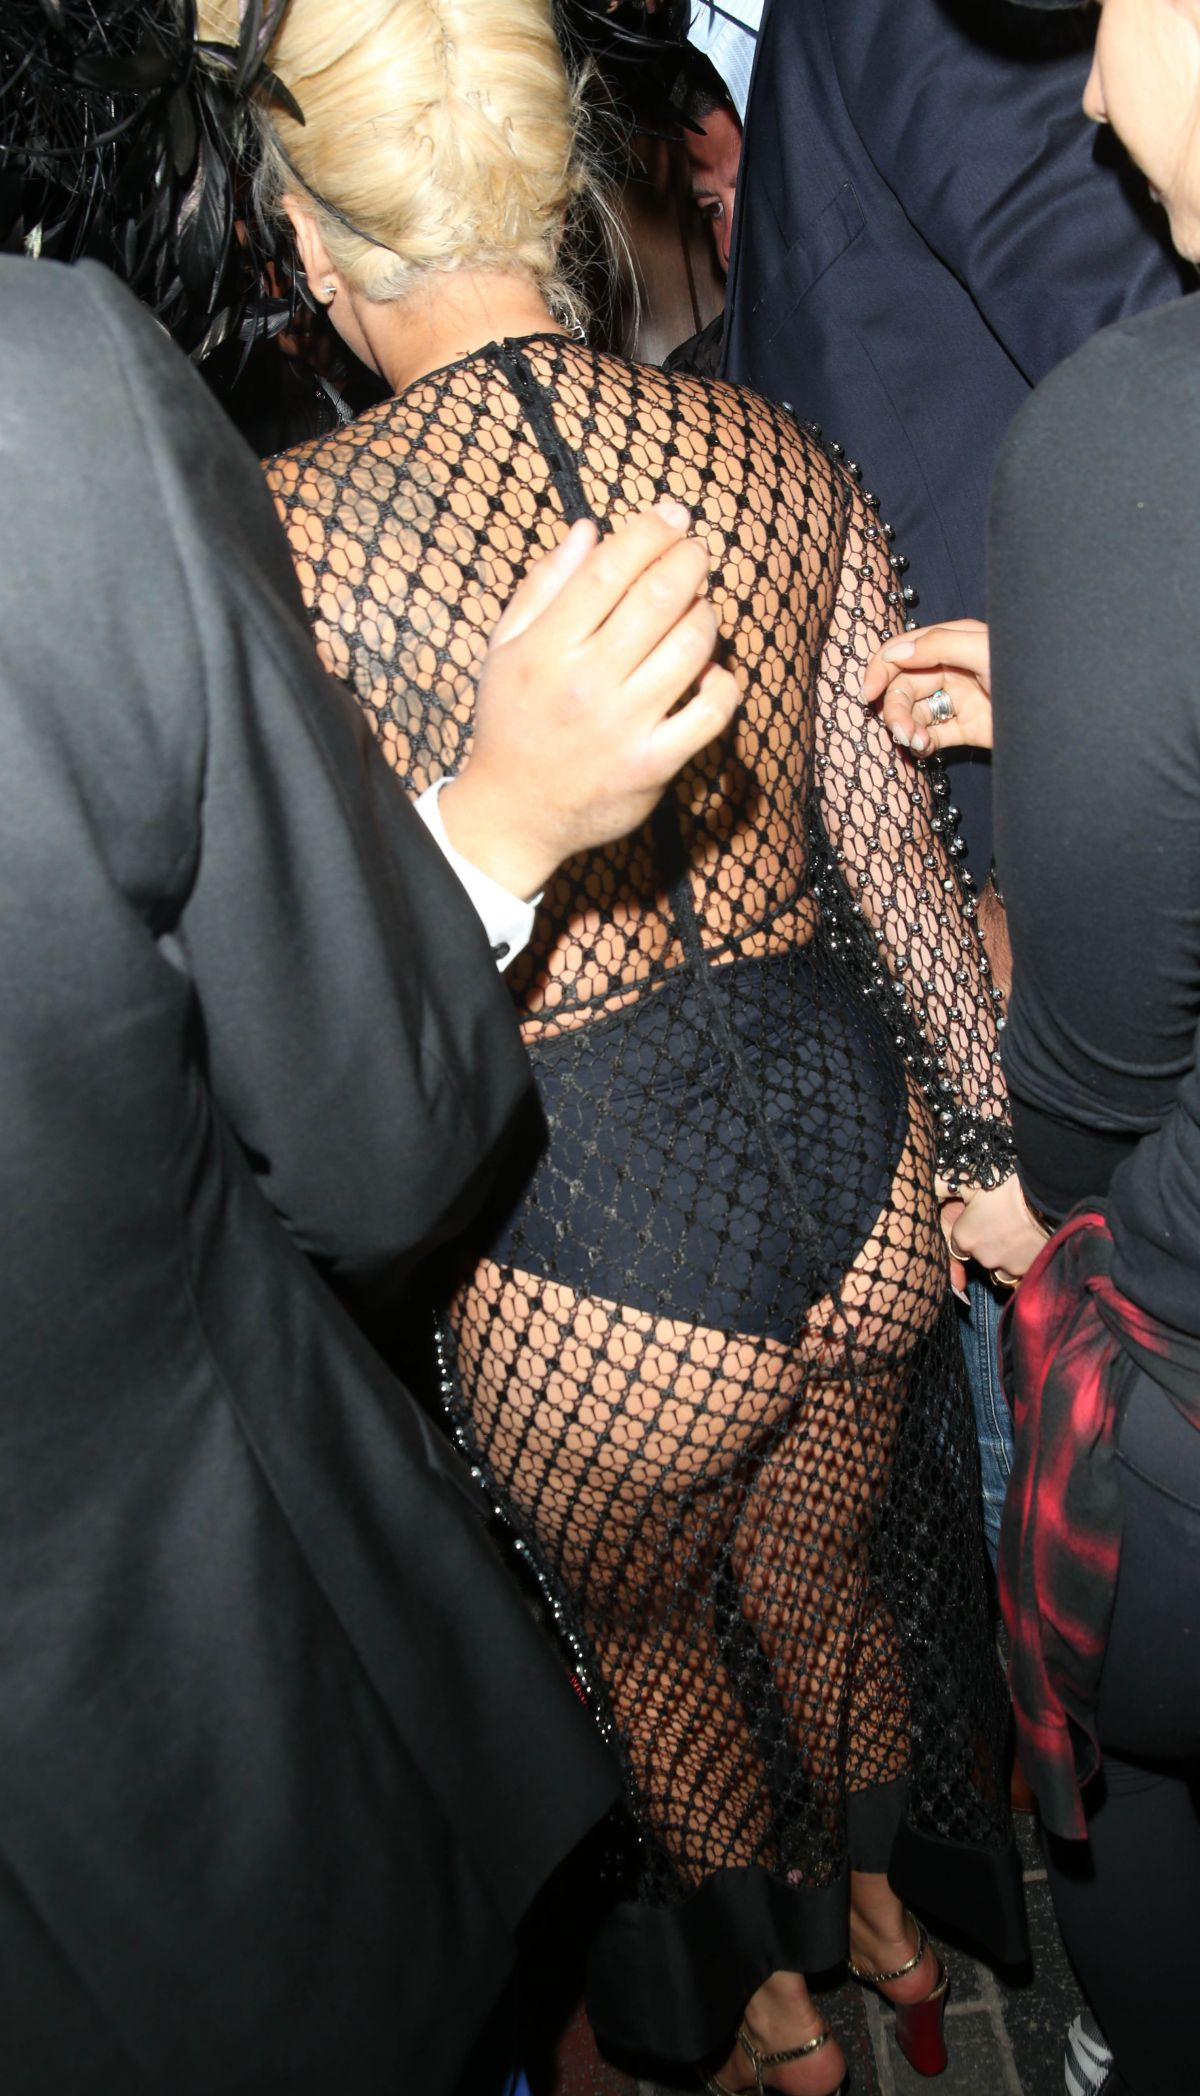 LADY GAGA Night Out in London 06/08/2015